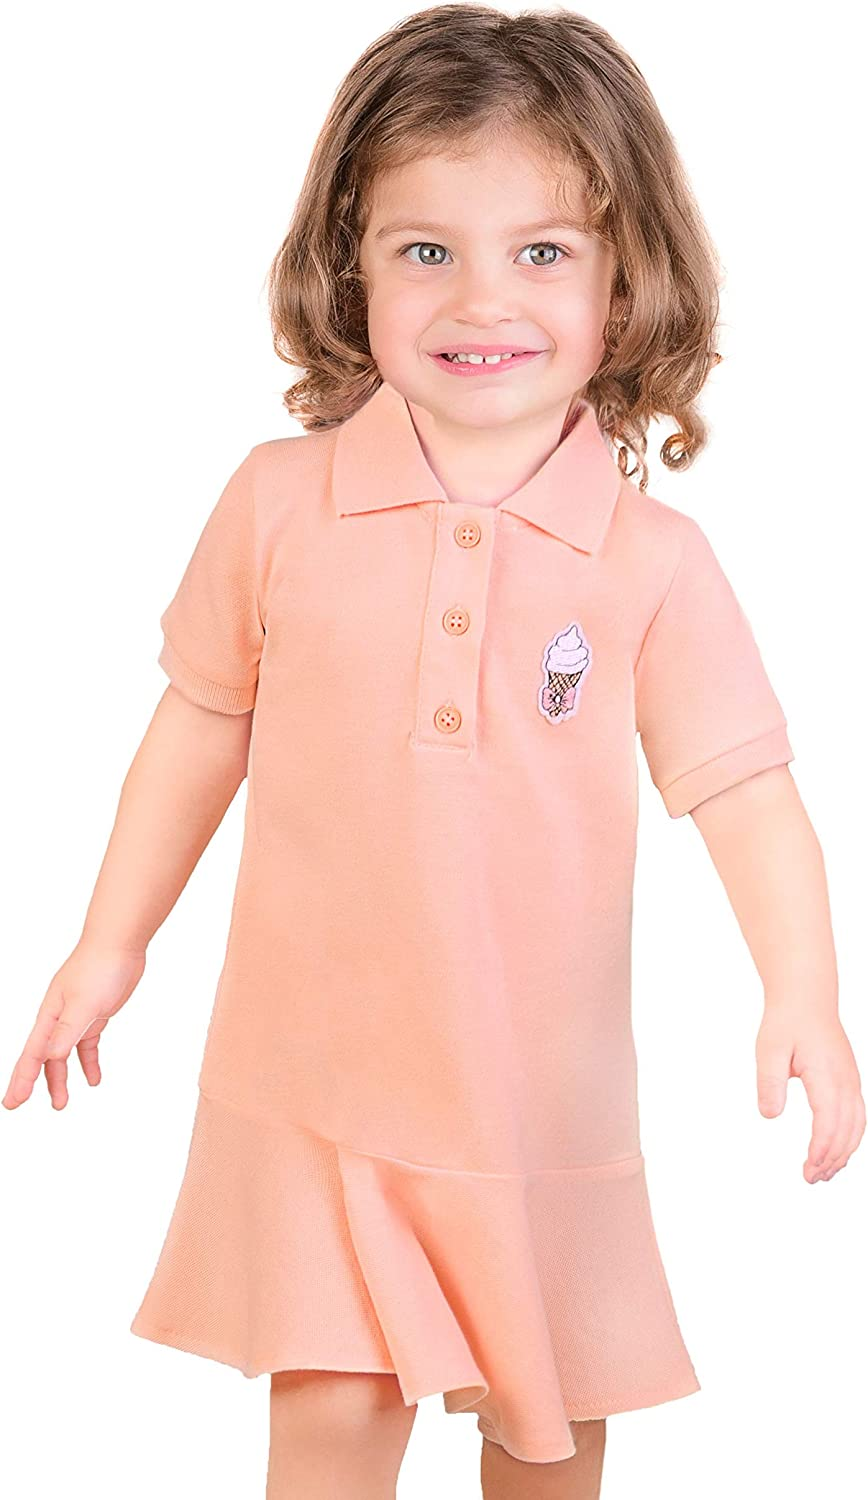 Lilax Girls Short Sleeve Casual Dress Casual Summer for Toddlers